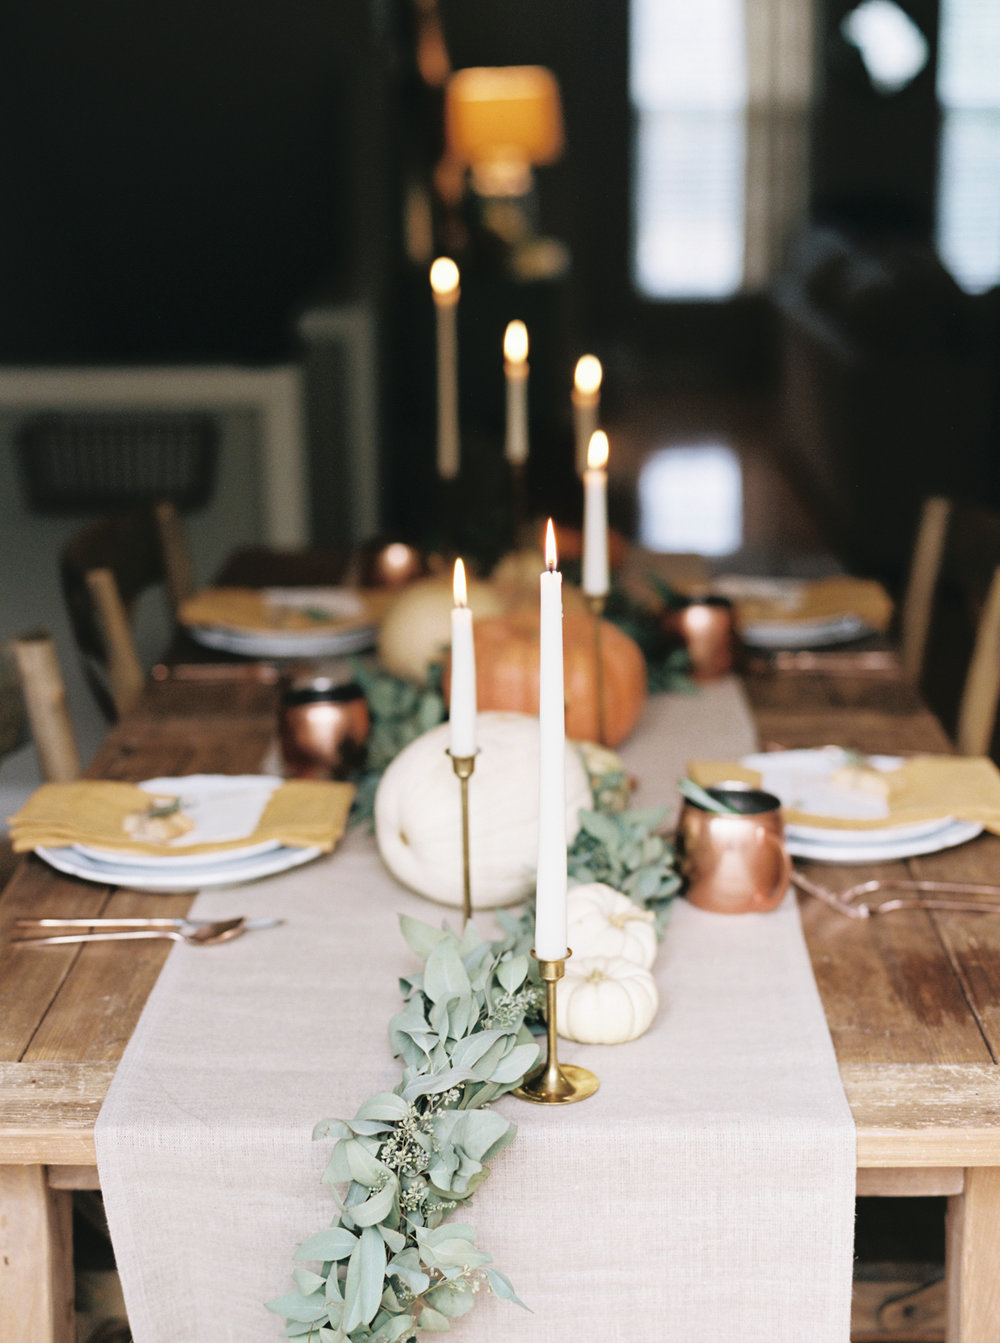 holiday-styled-table-007.jpg